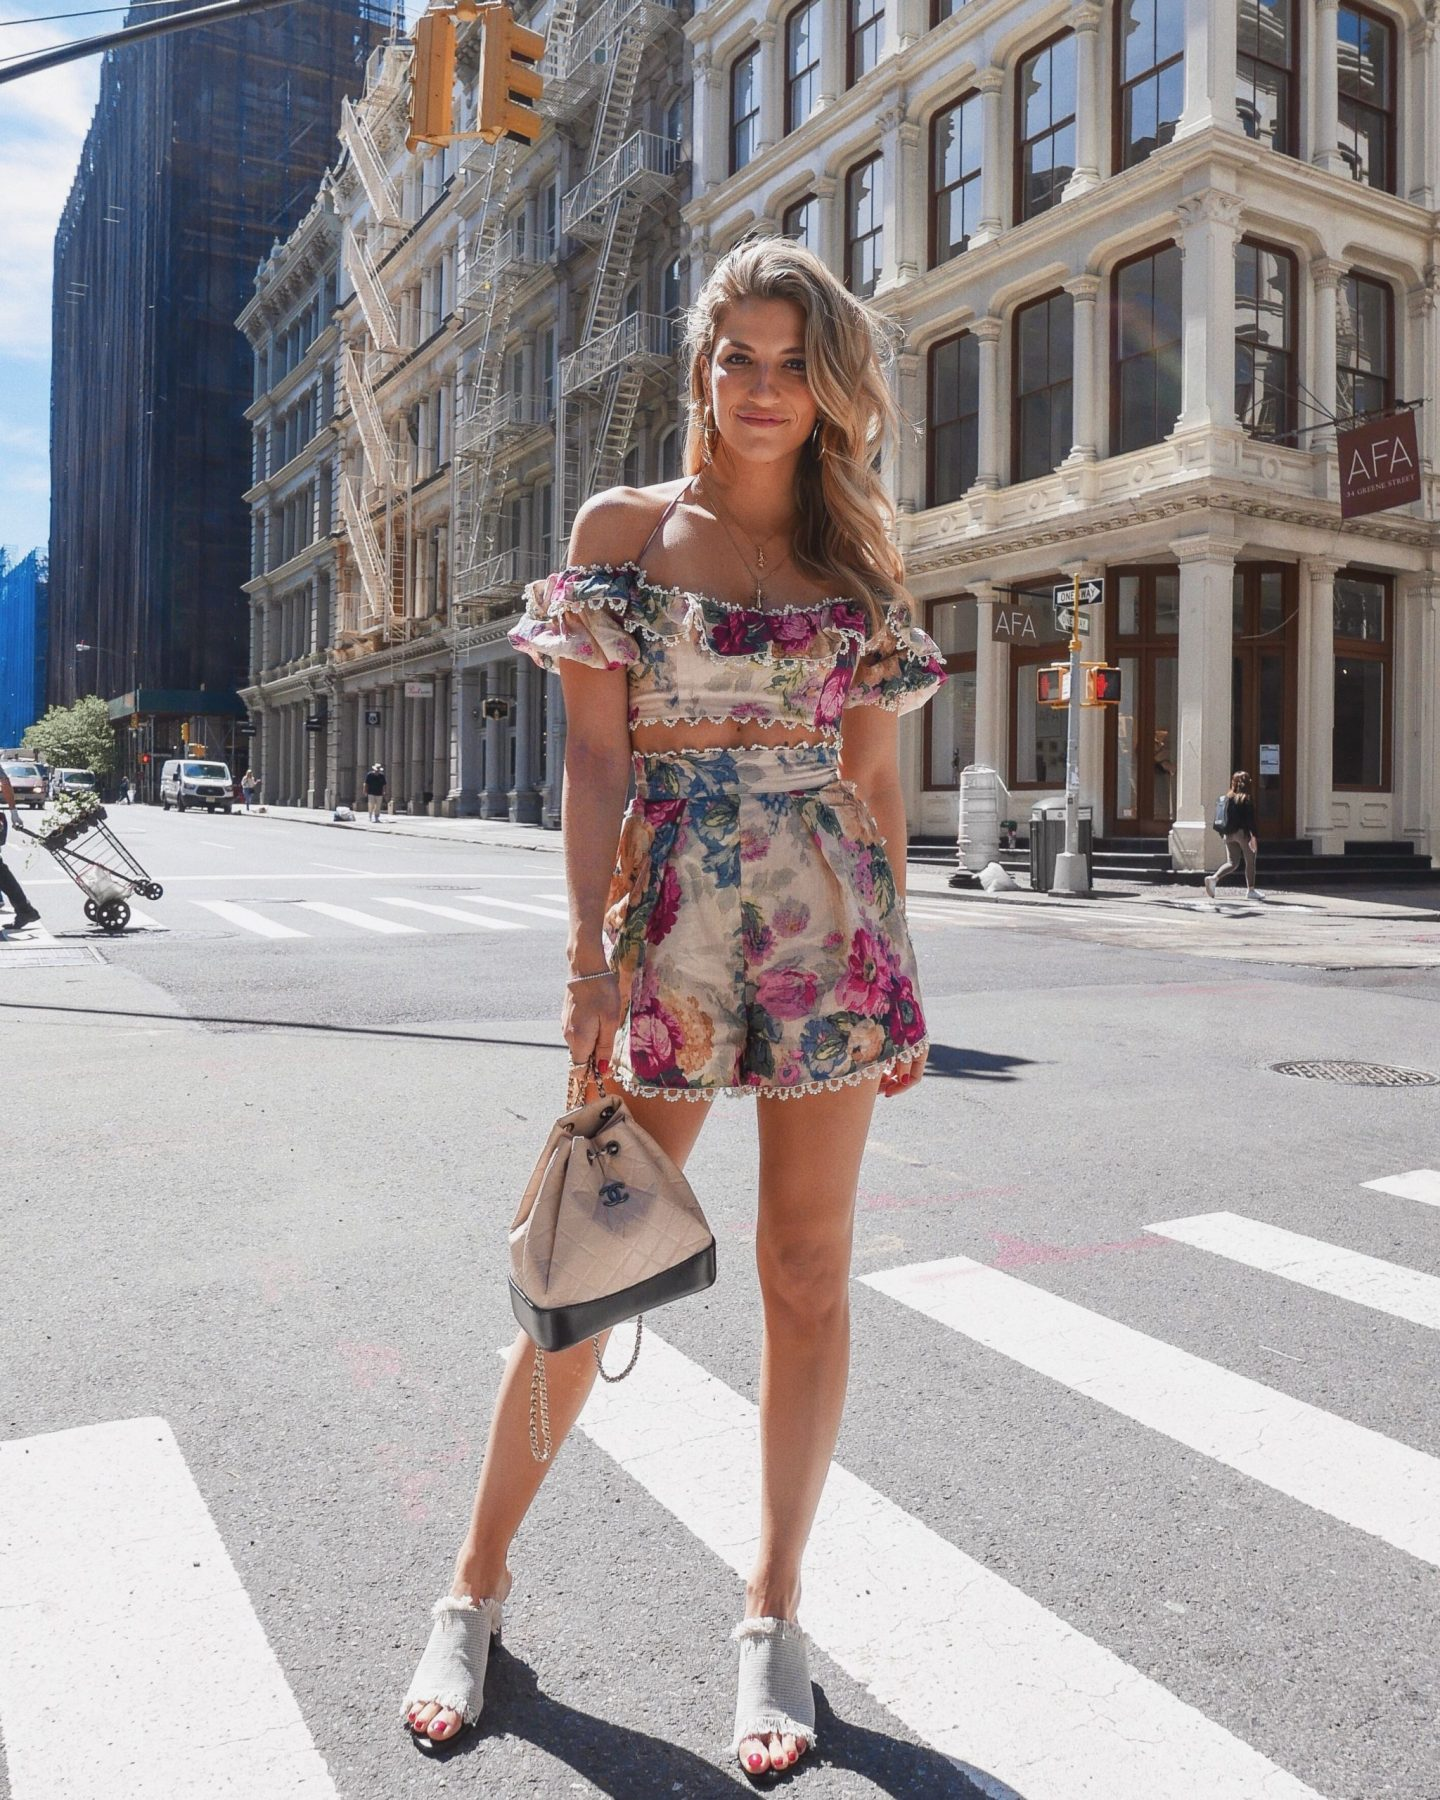 Cassandra DiMicco, Cass DiMicco, Dressed For Dreams, NYC, New York City, New York, Street Style NYC, Street Style 2018, NYC Street Style Street Style Outfits, 2018 Trends, NYC Fashion Blogger, Zimmermann two piece set, Zimmermann, Chanel backpack, woven mules, Tony Bianco mules, Tony Bianco, soho